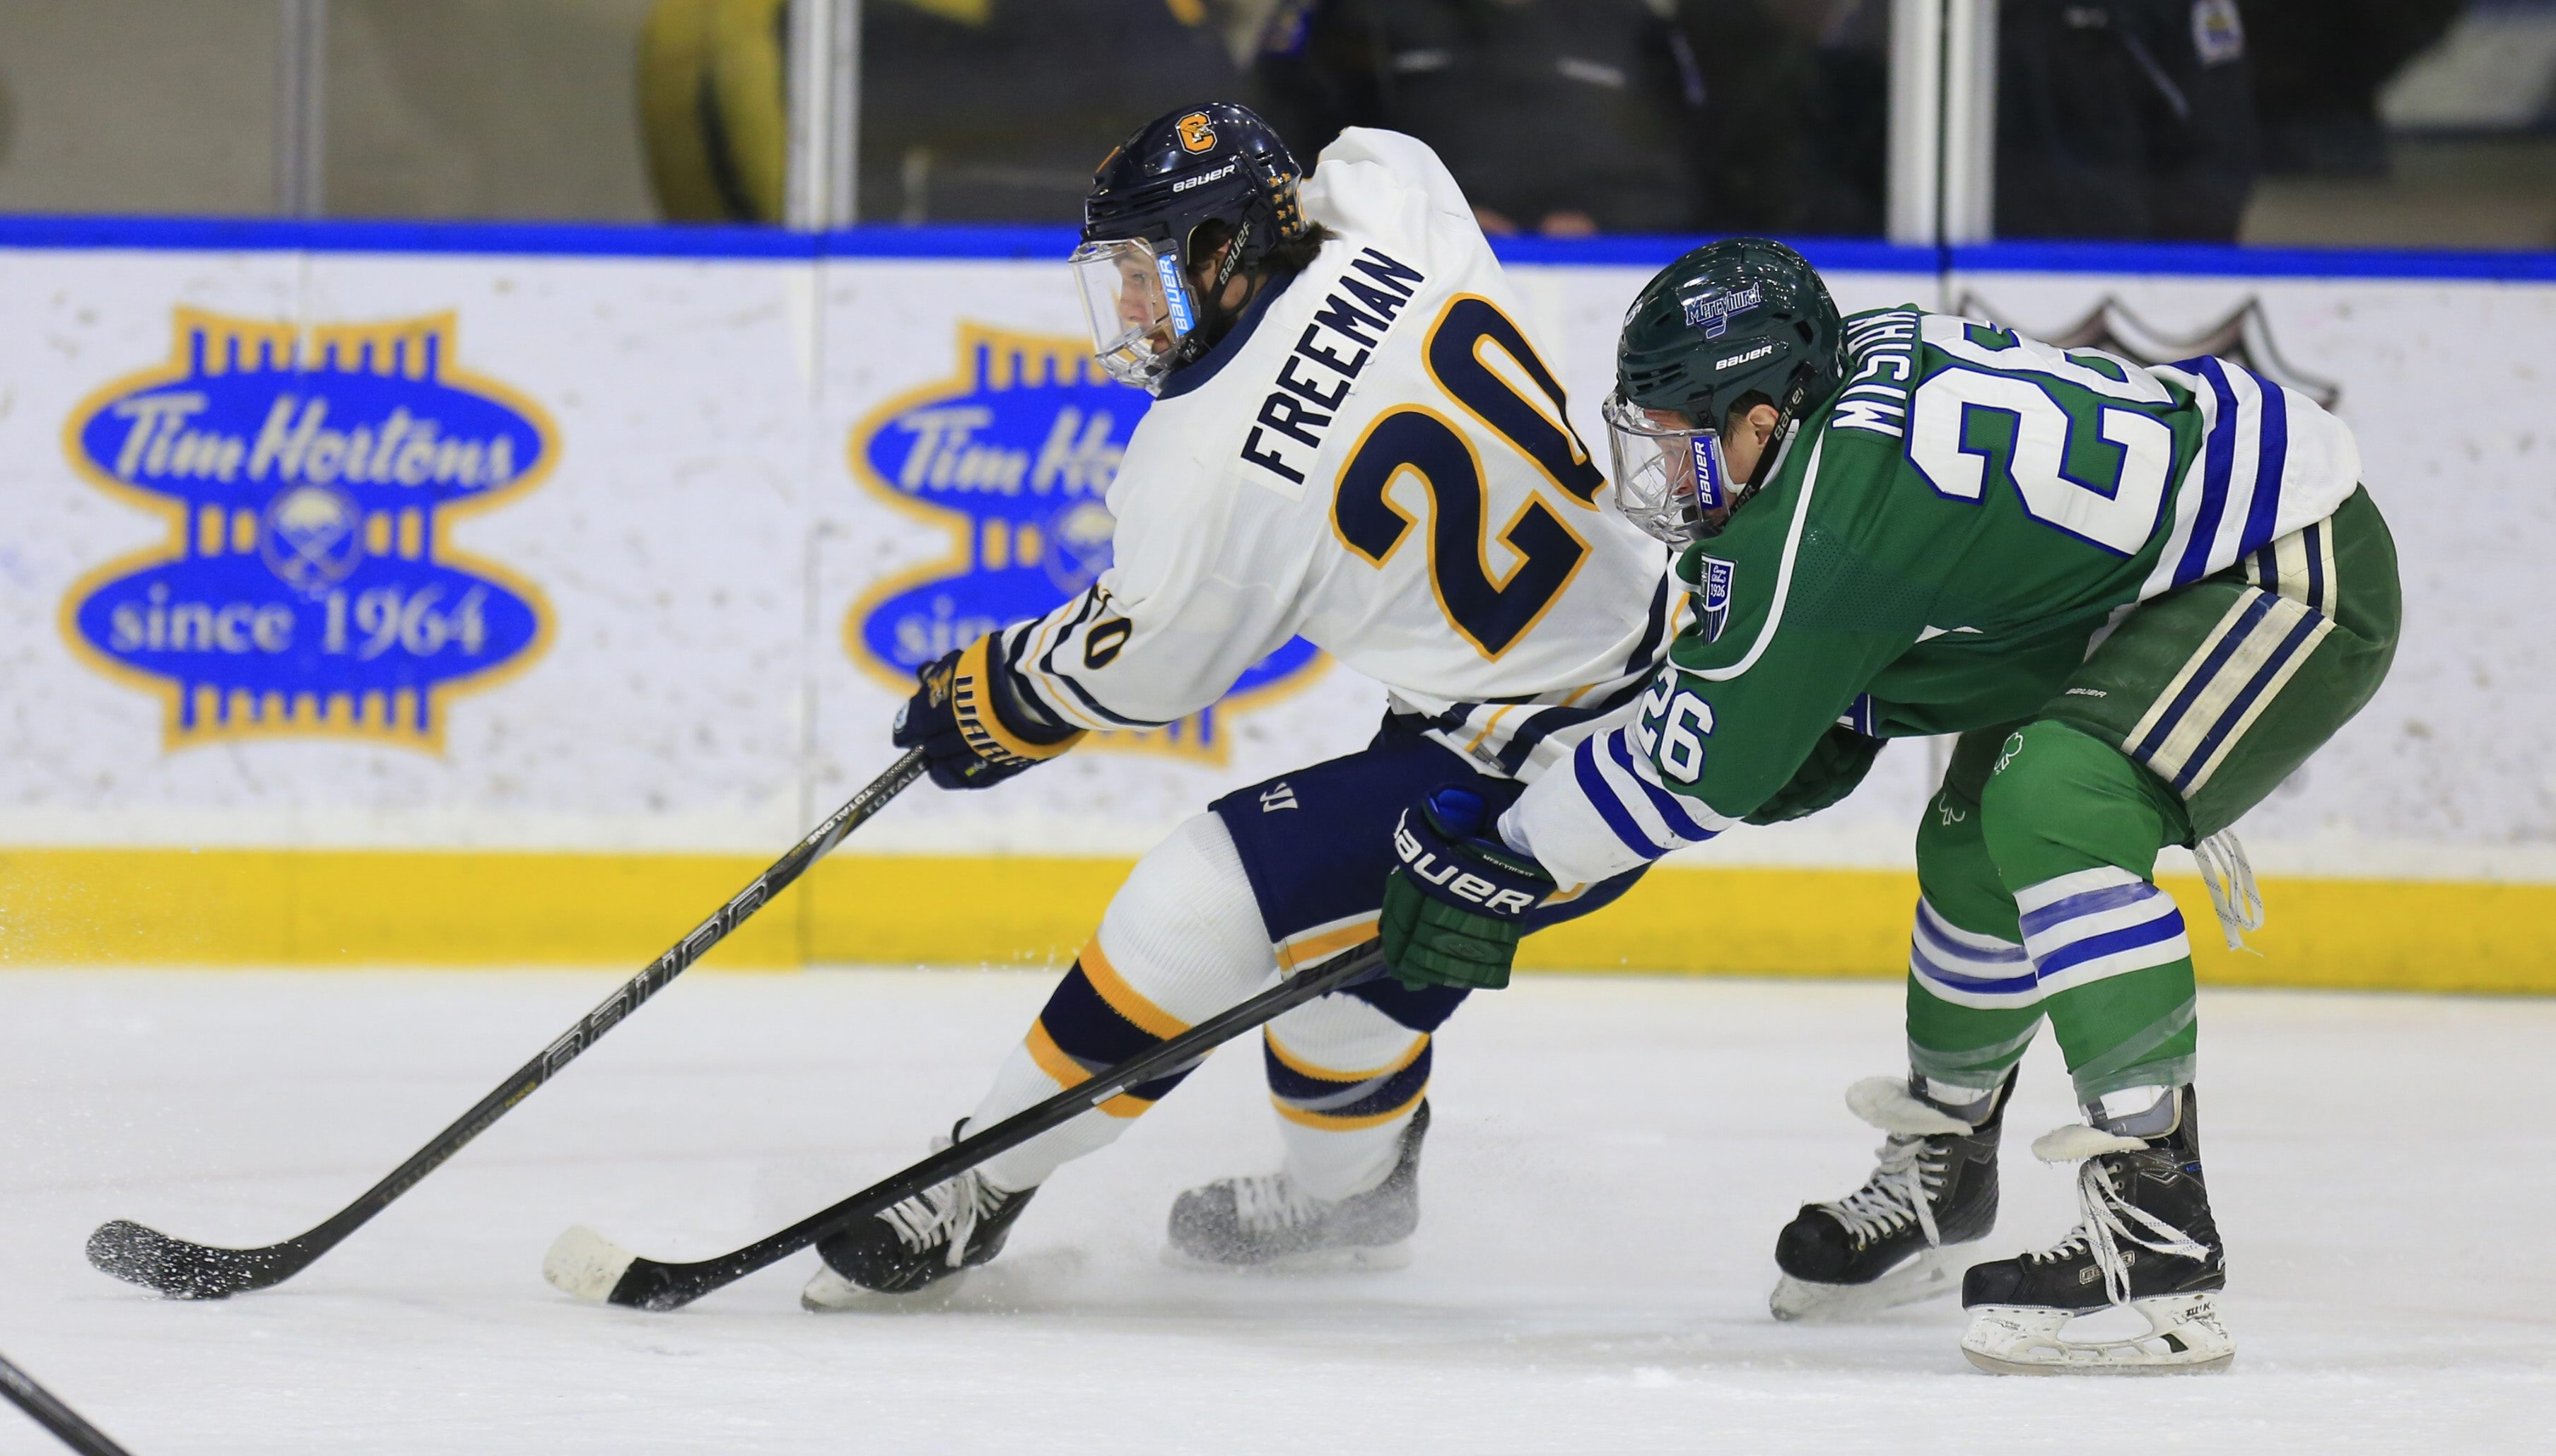 Canisius' Cody Freeman (20) skates past Mercyhurst player Ryan Misiak (26) during first period action at the HarborCenter center  on Saturday, Feb. 21, 2015.(Harry Scull Jr./Buffalo News)